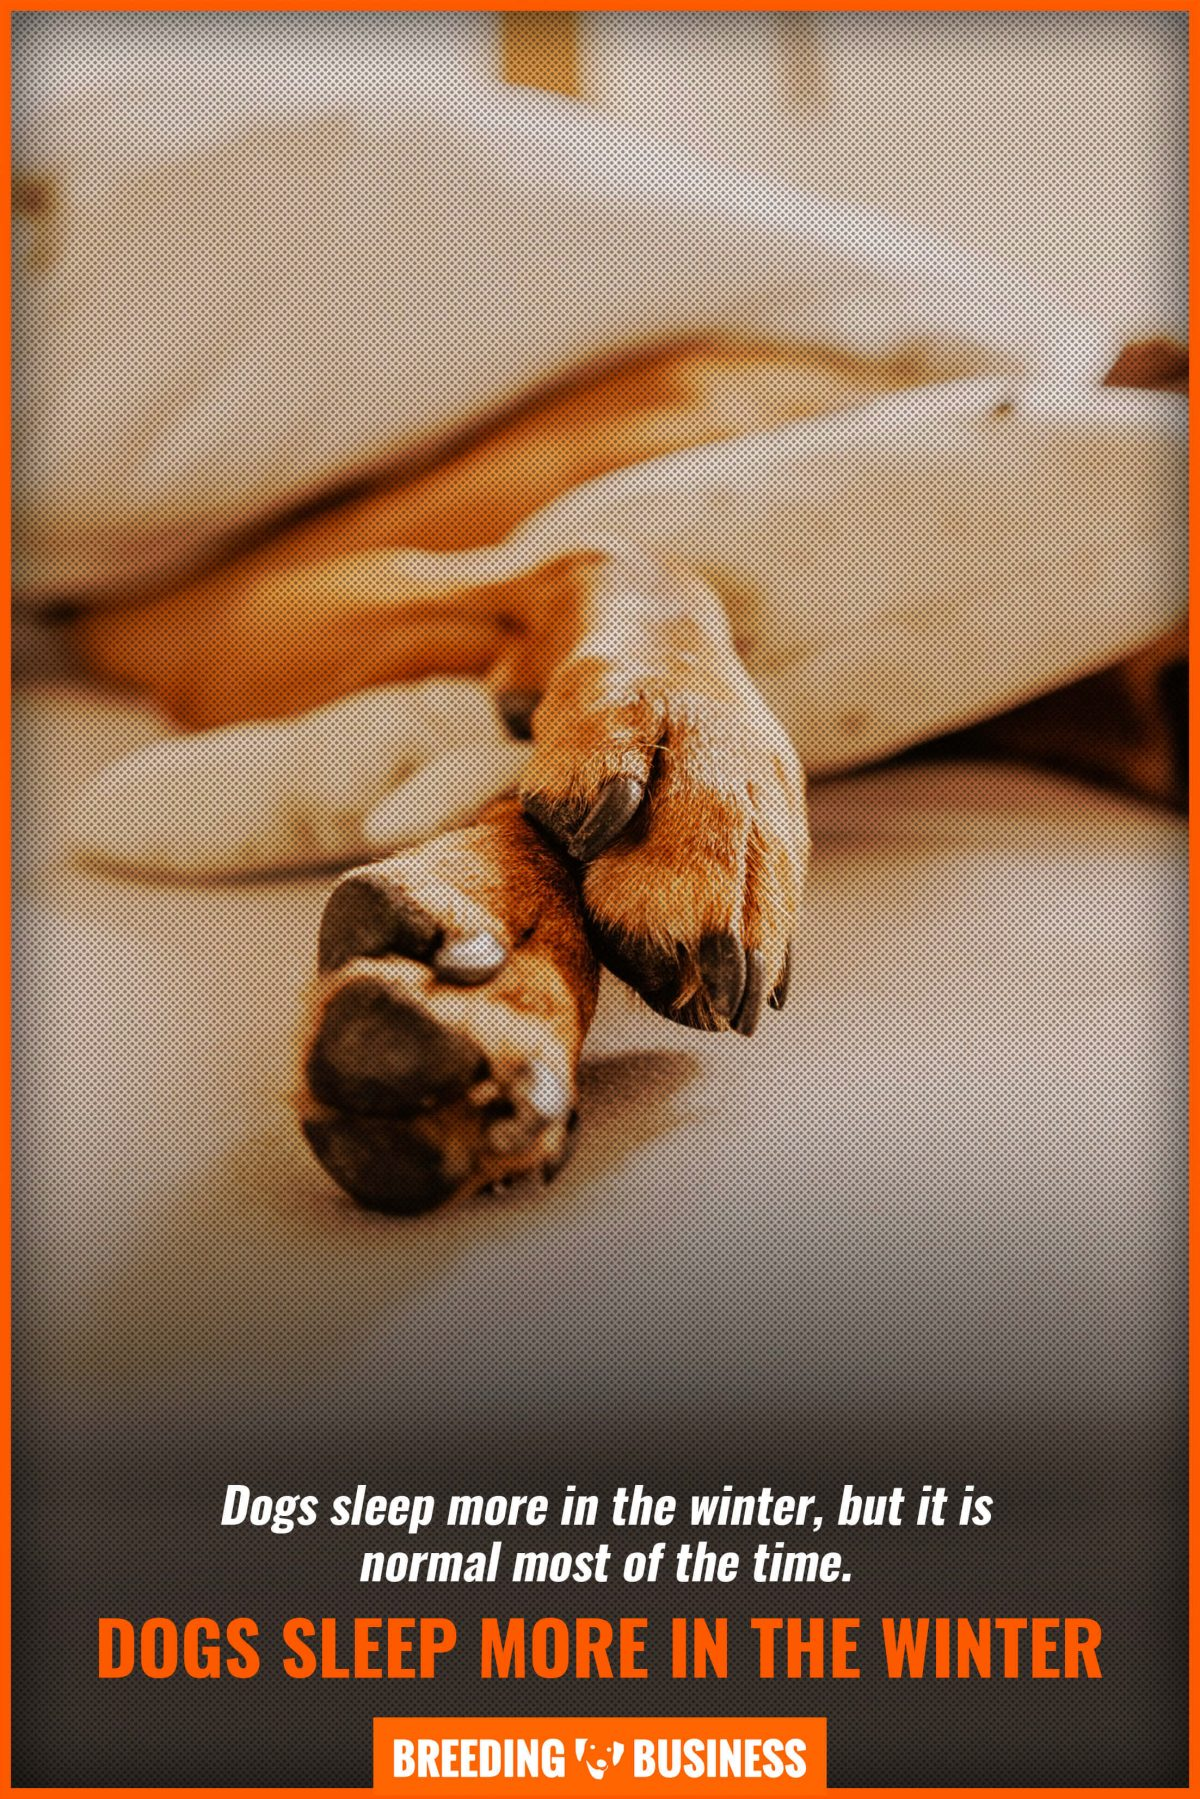 dogs sleep more in the winter